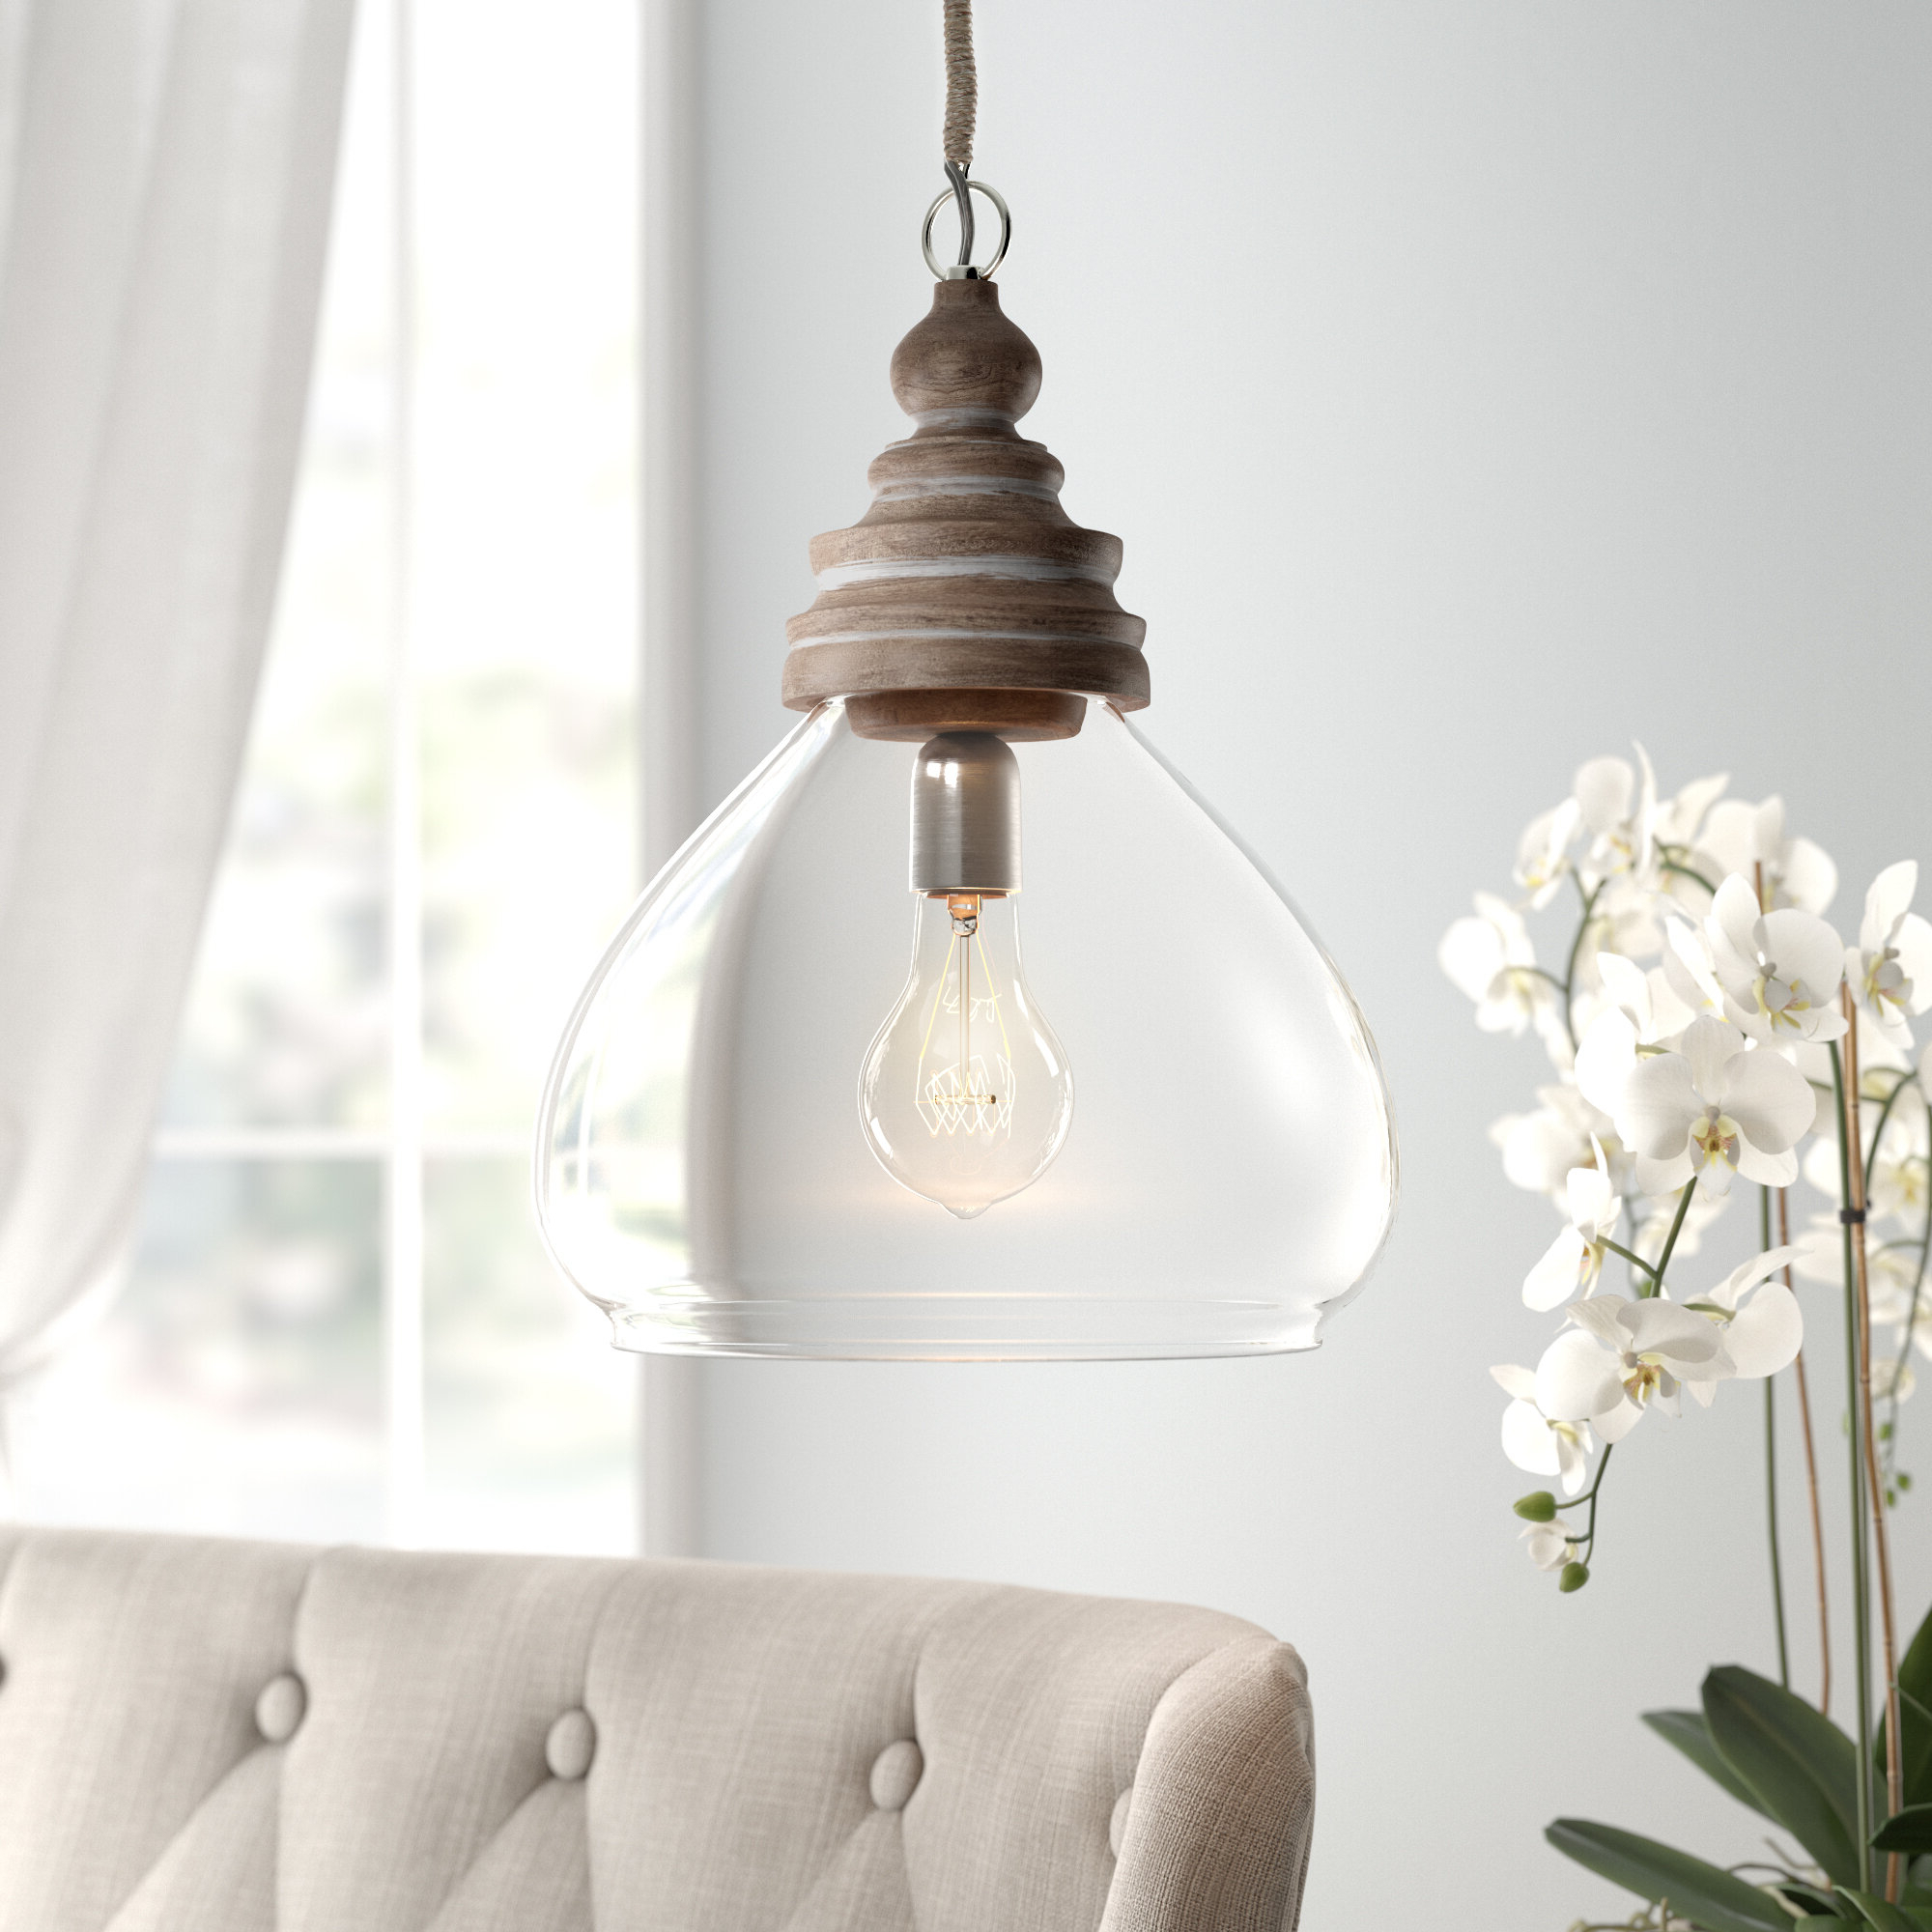 1 Light Single Dome Pendants With Regard To Well Liked Brisa 1 Light Single Dome Pendant (Gallery 20 of 20)